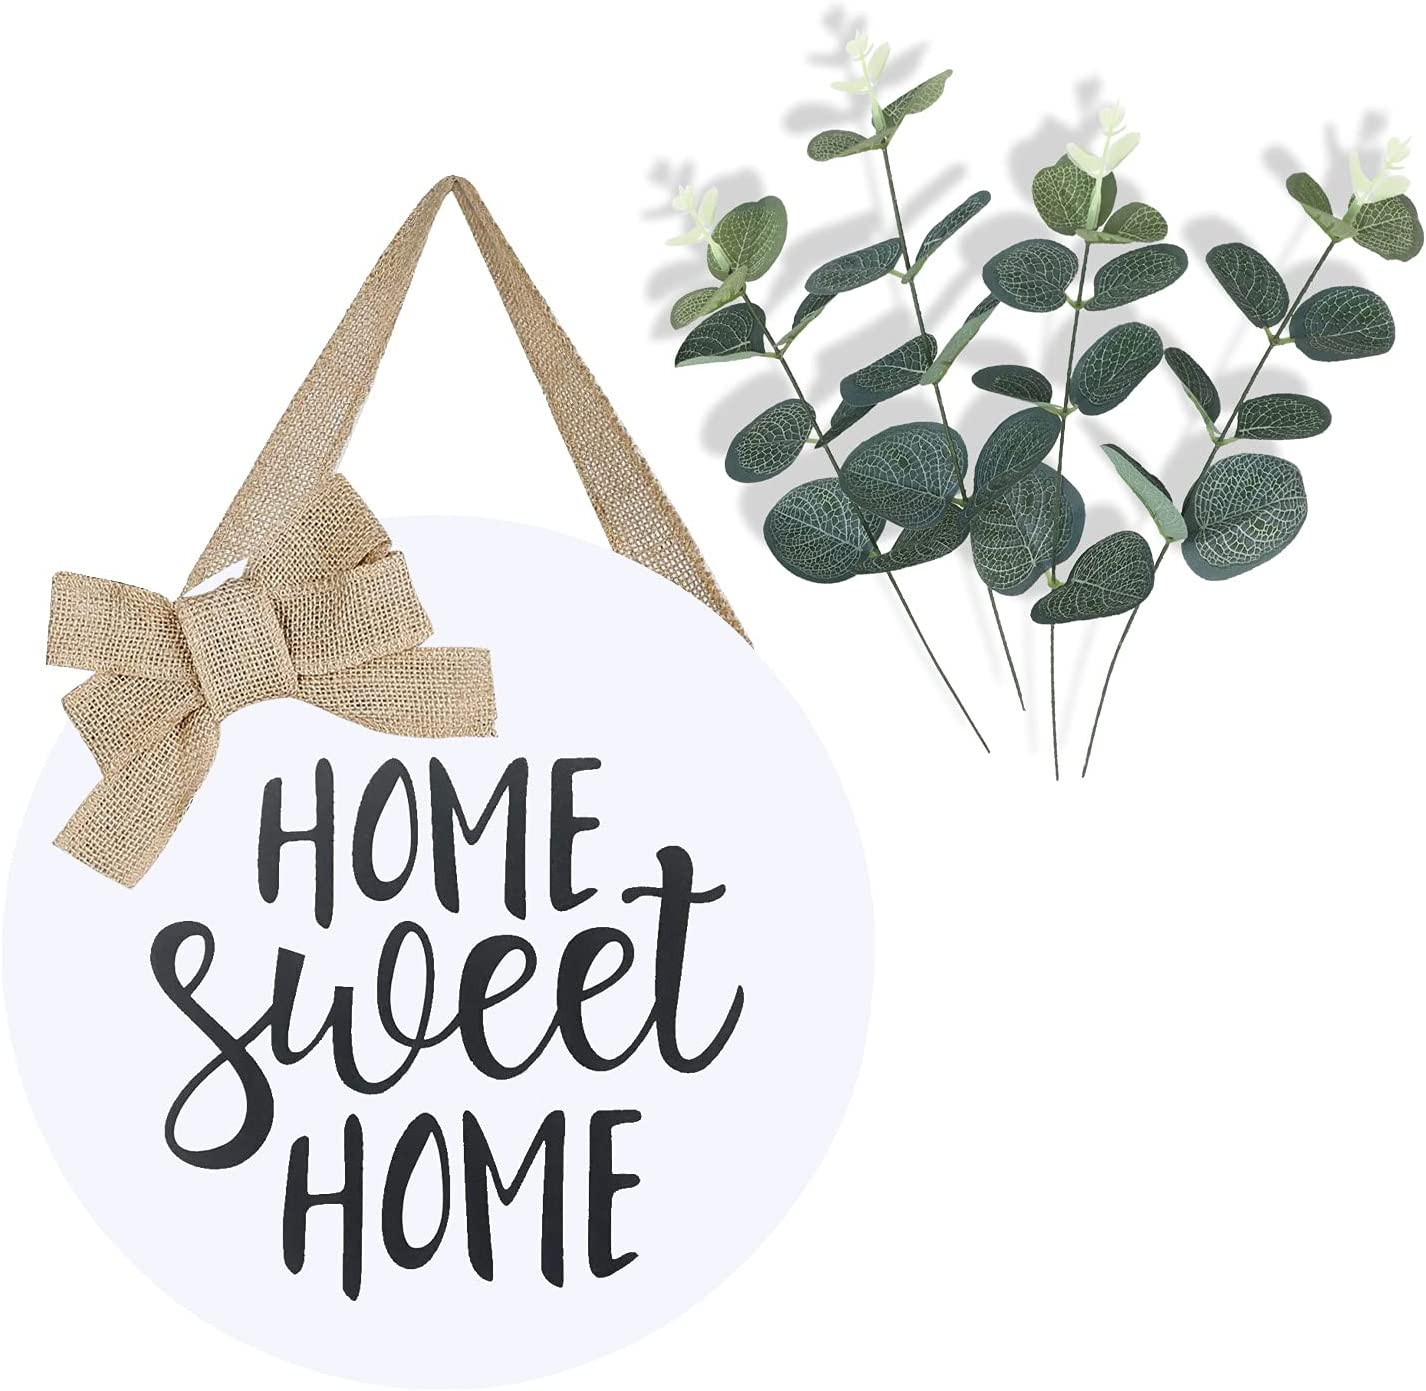 LEJHOME Home Sweet Home Sign Front Door - Wood Welcome Wreaths Sign for Rustic Farmhouse Decorations - Rustic Wooden Door Hangers Front Porch Decor Outdoor Hanging 12 x 12 Inch